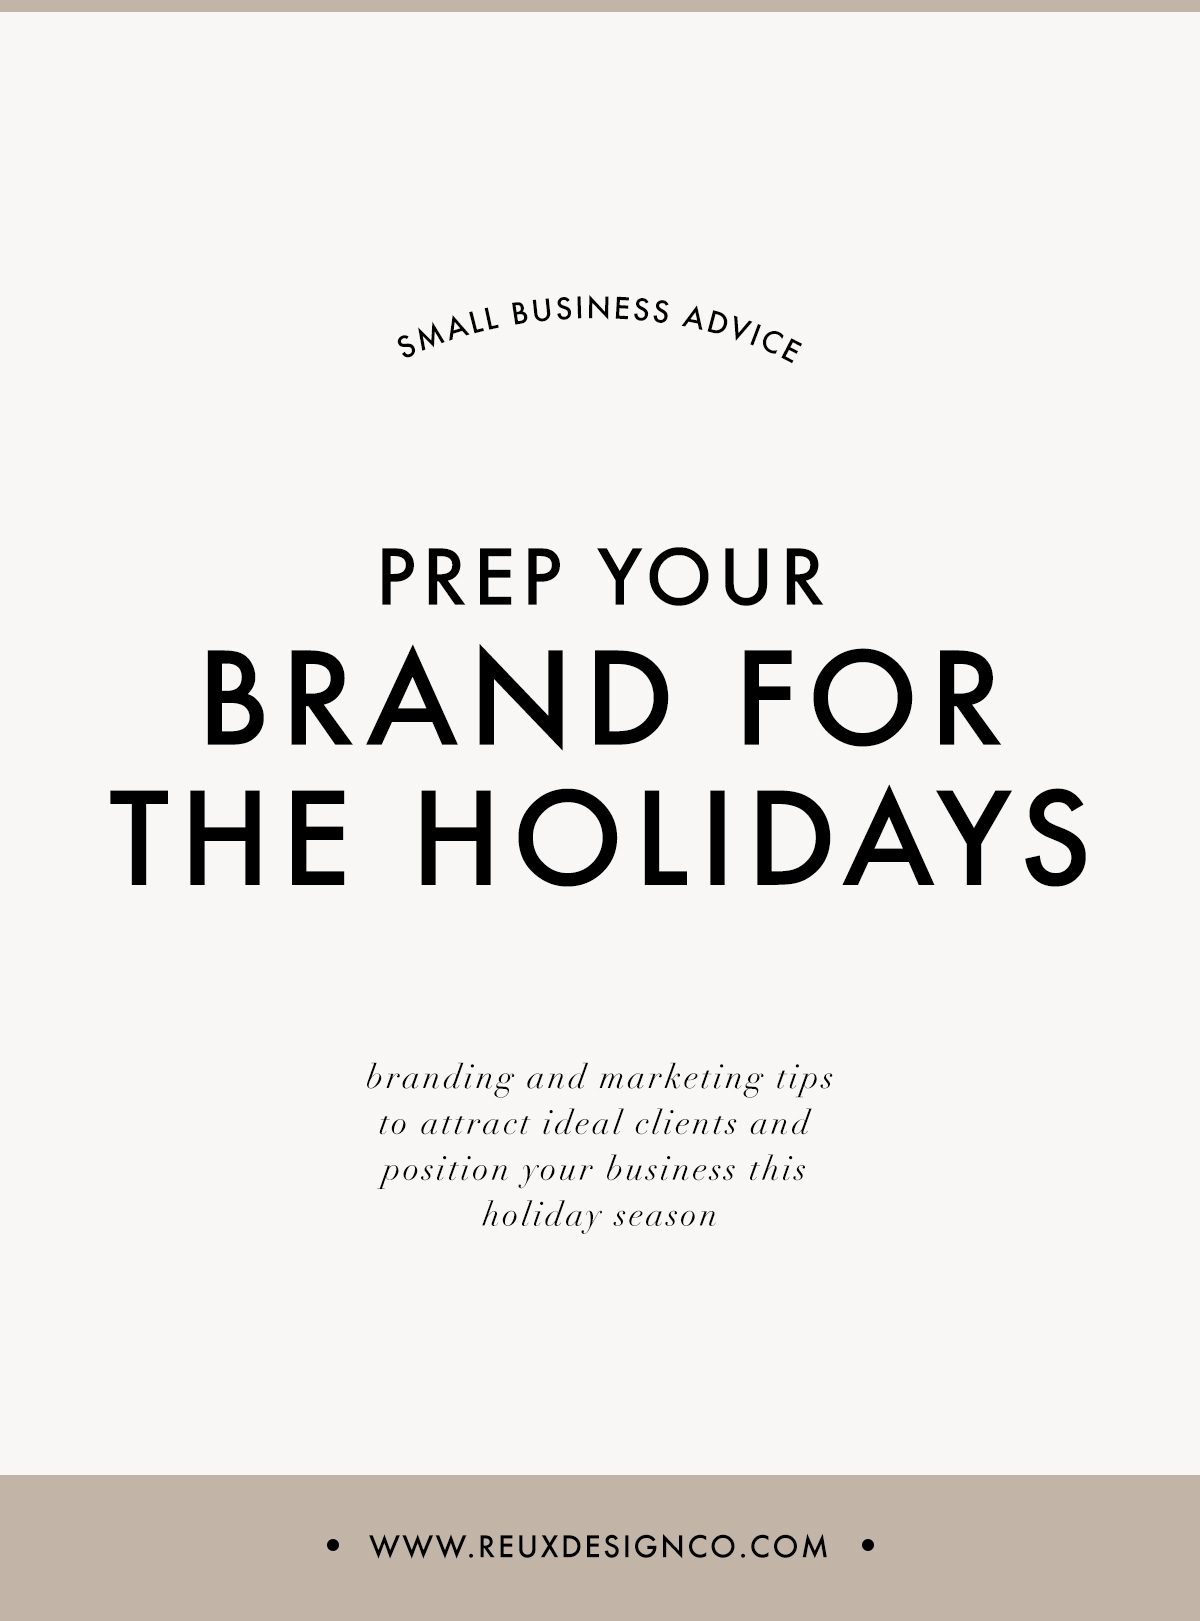 Holiday Season Branding and Marketing Prep Tips | Reux Design Co.